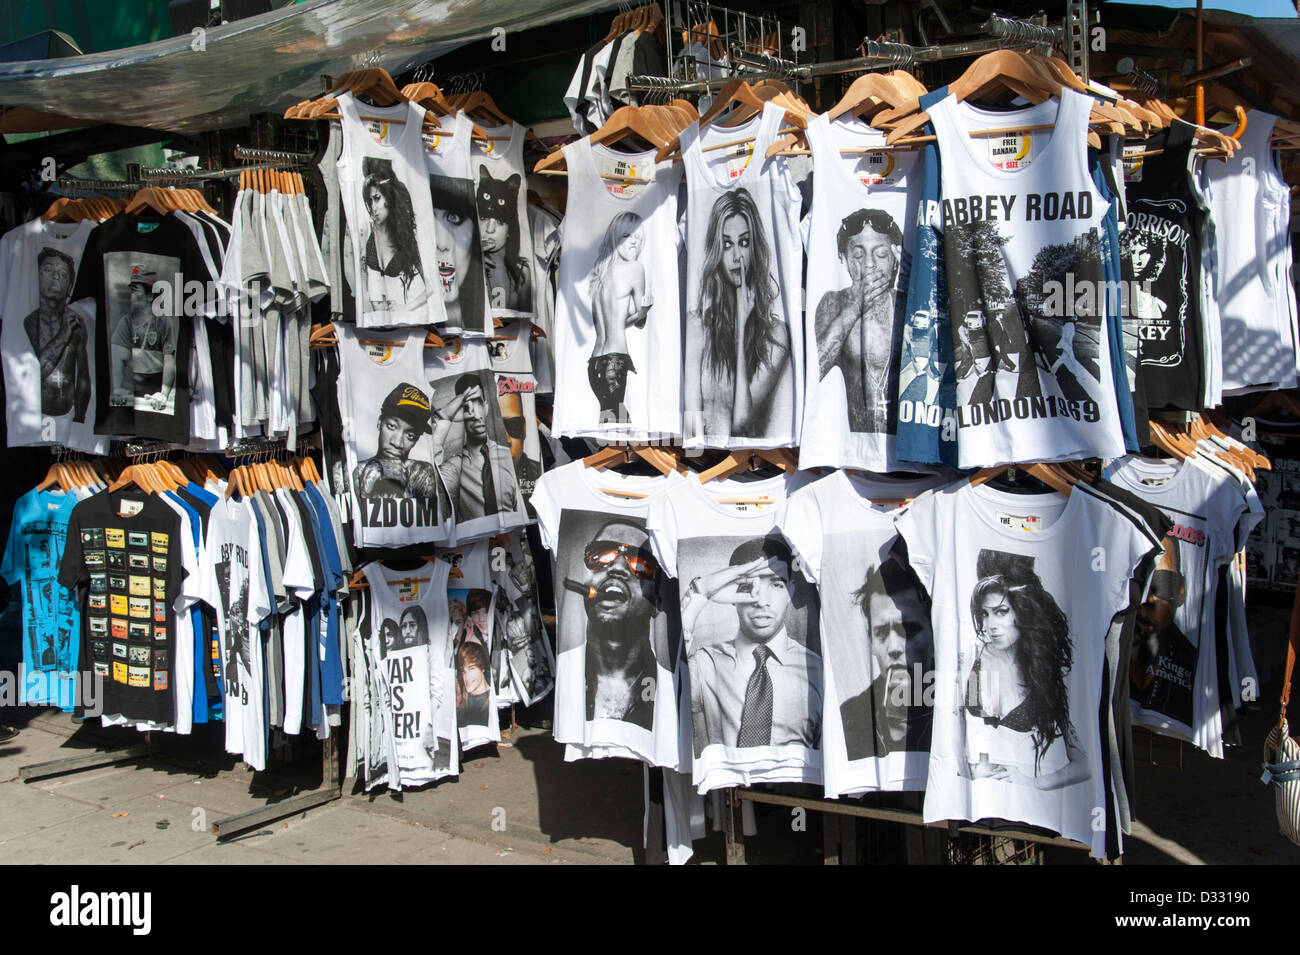 Trendy Printed T Shirts Showing Famous People For Sale On Camden